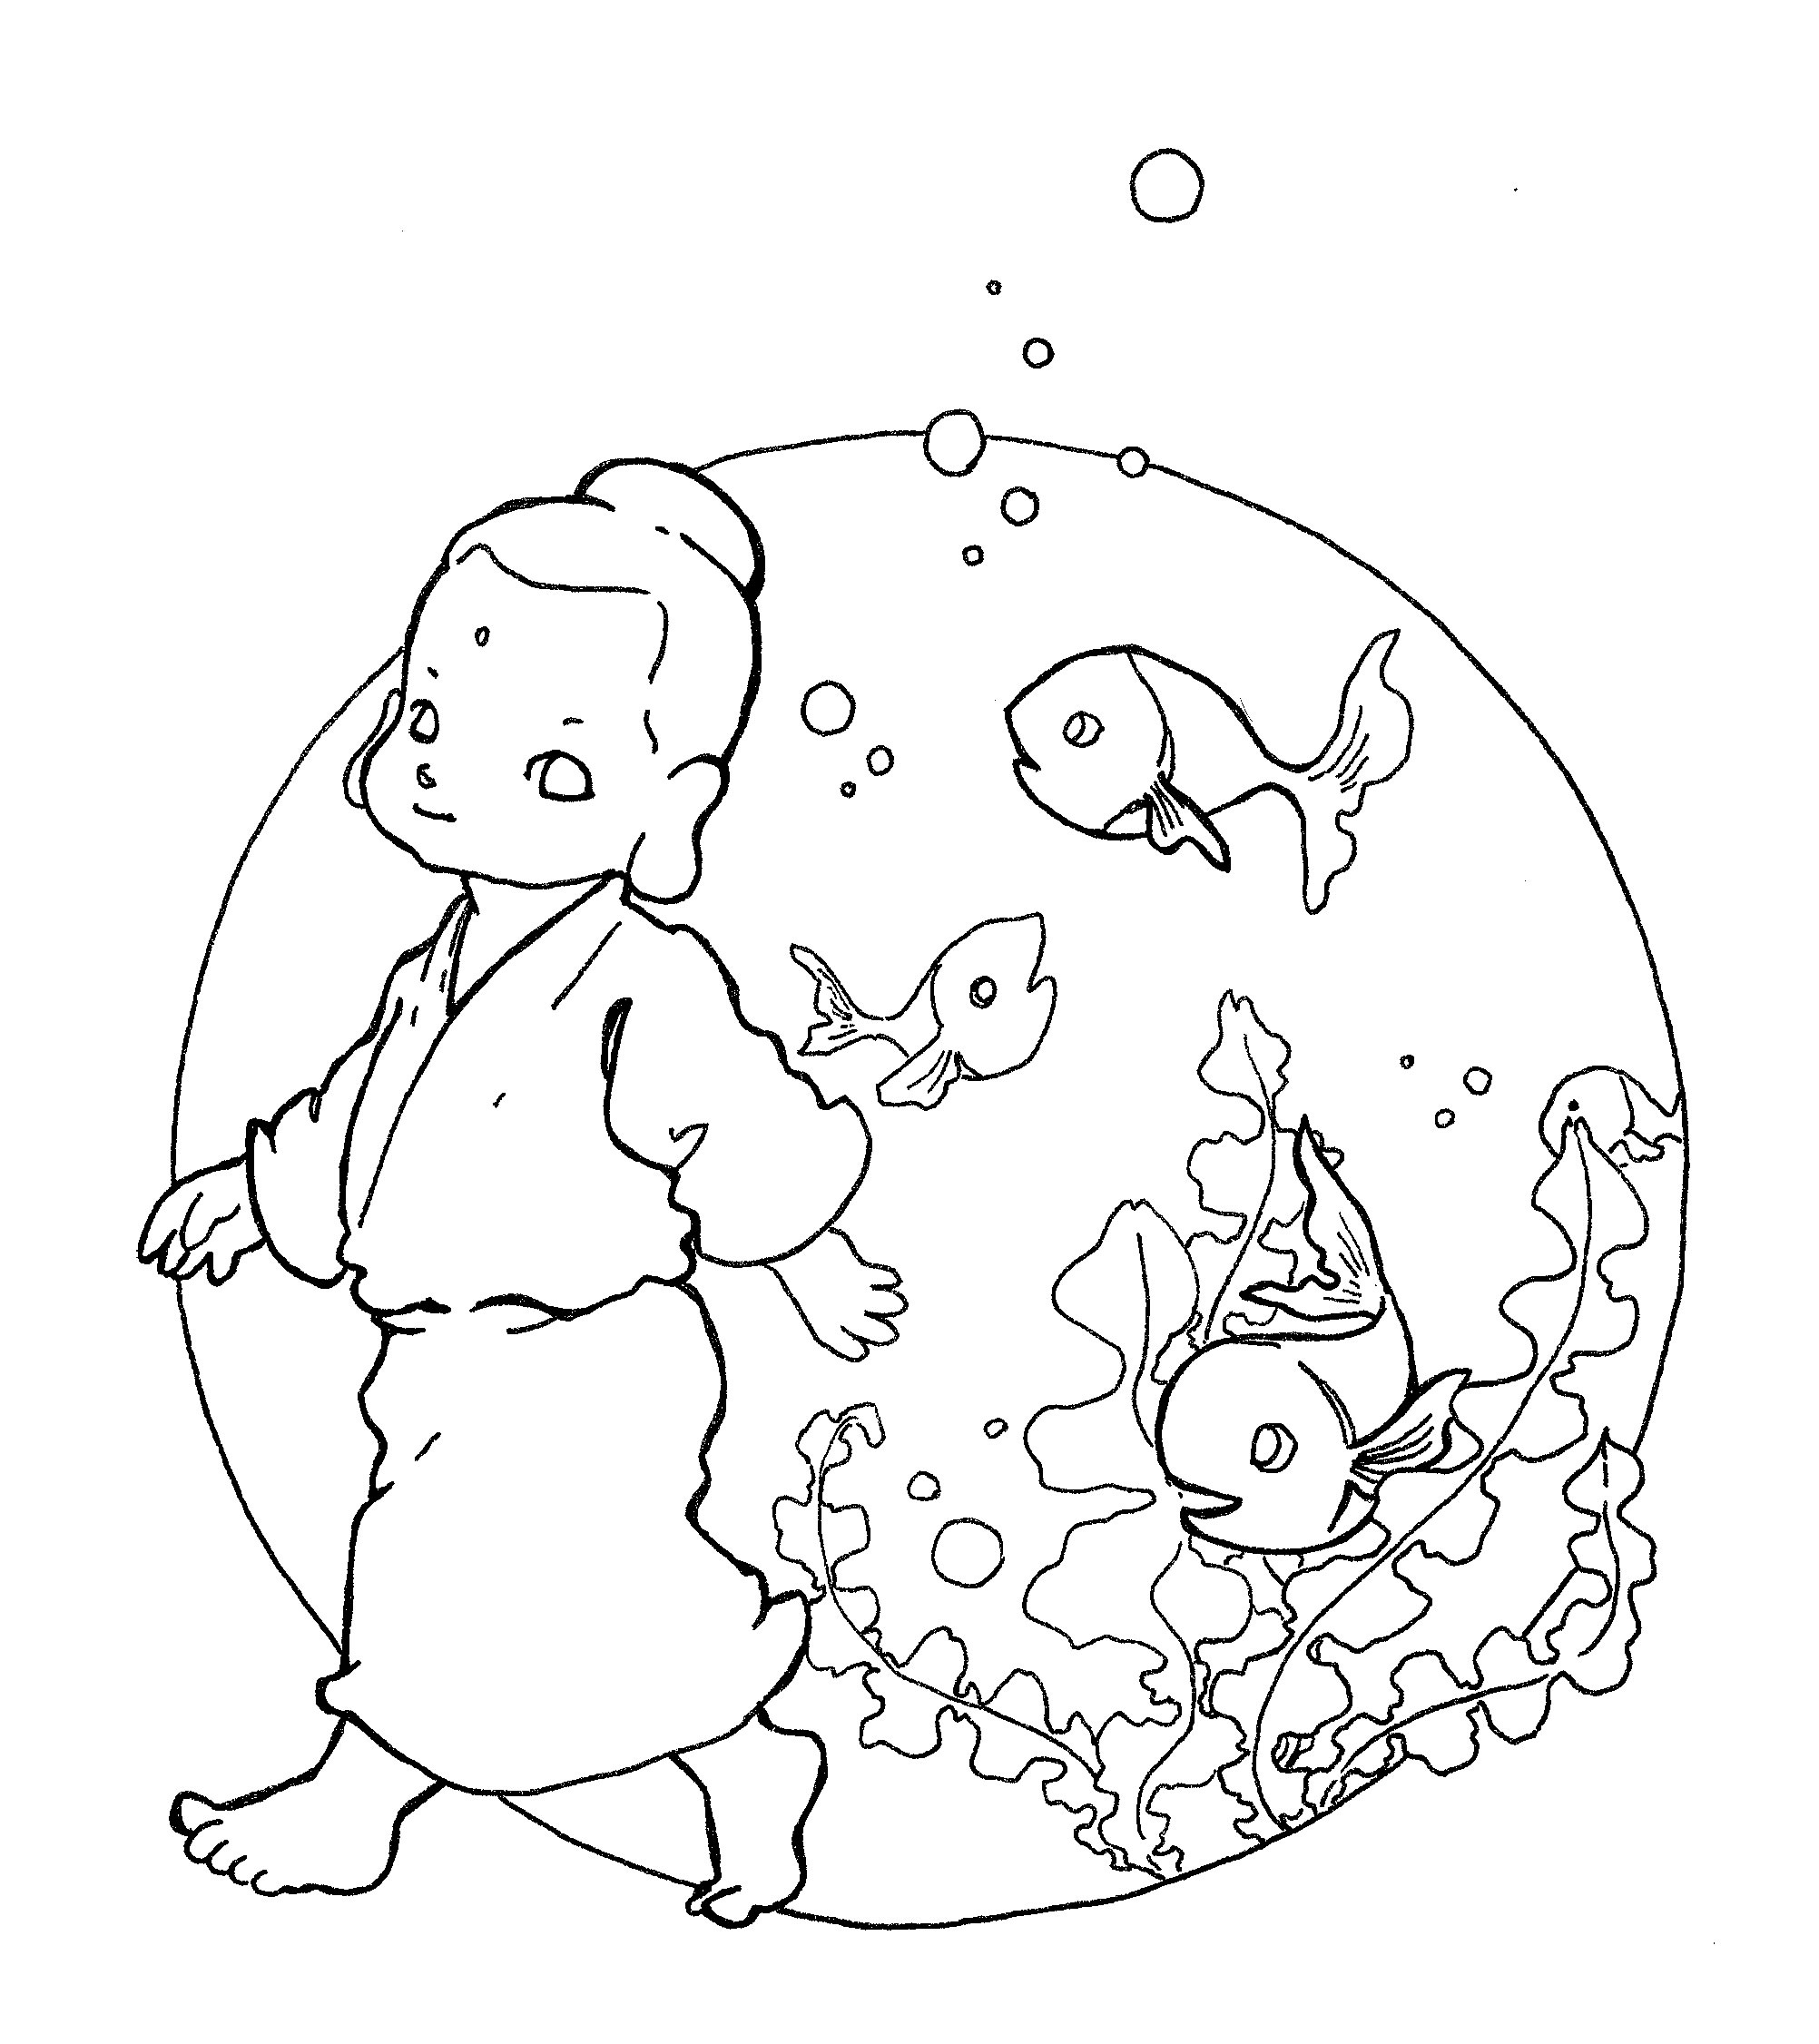 buddha coloring pages buddha coloring pages printable at getdrawings free download pages coloring buddha